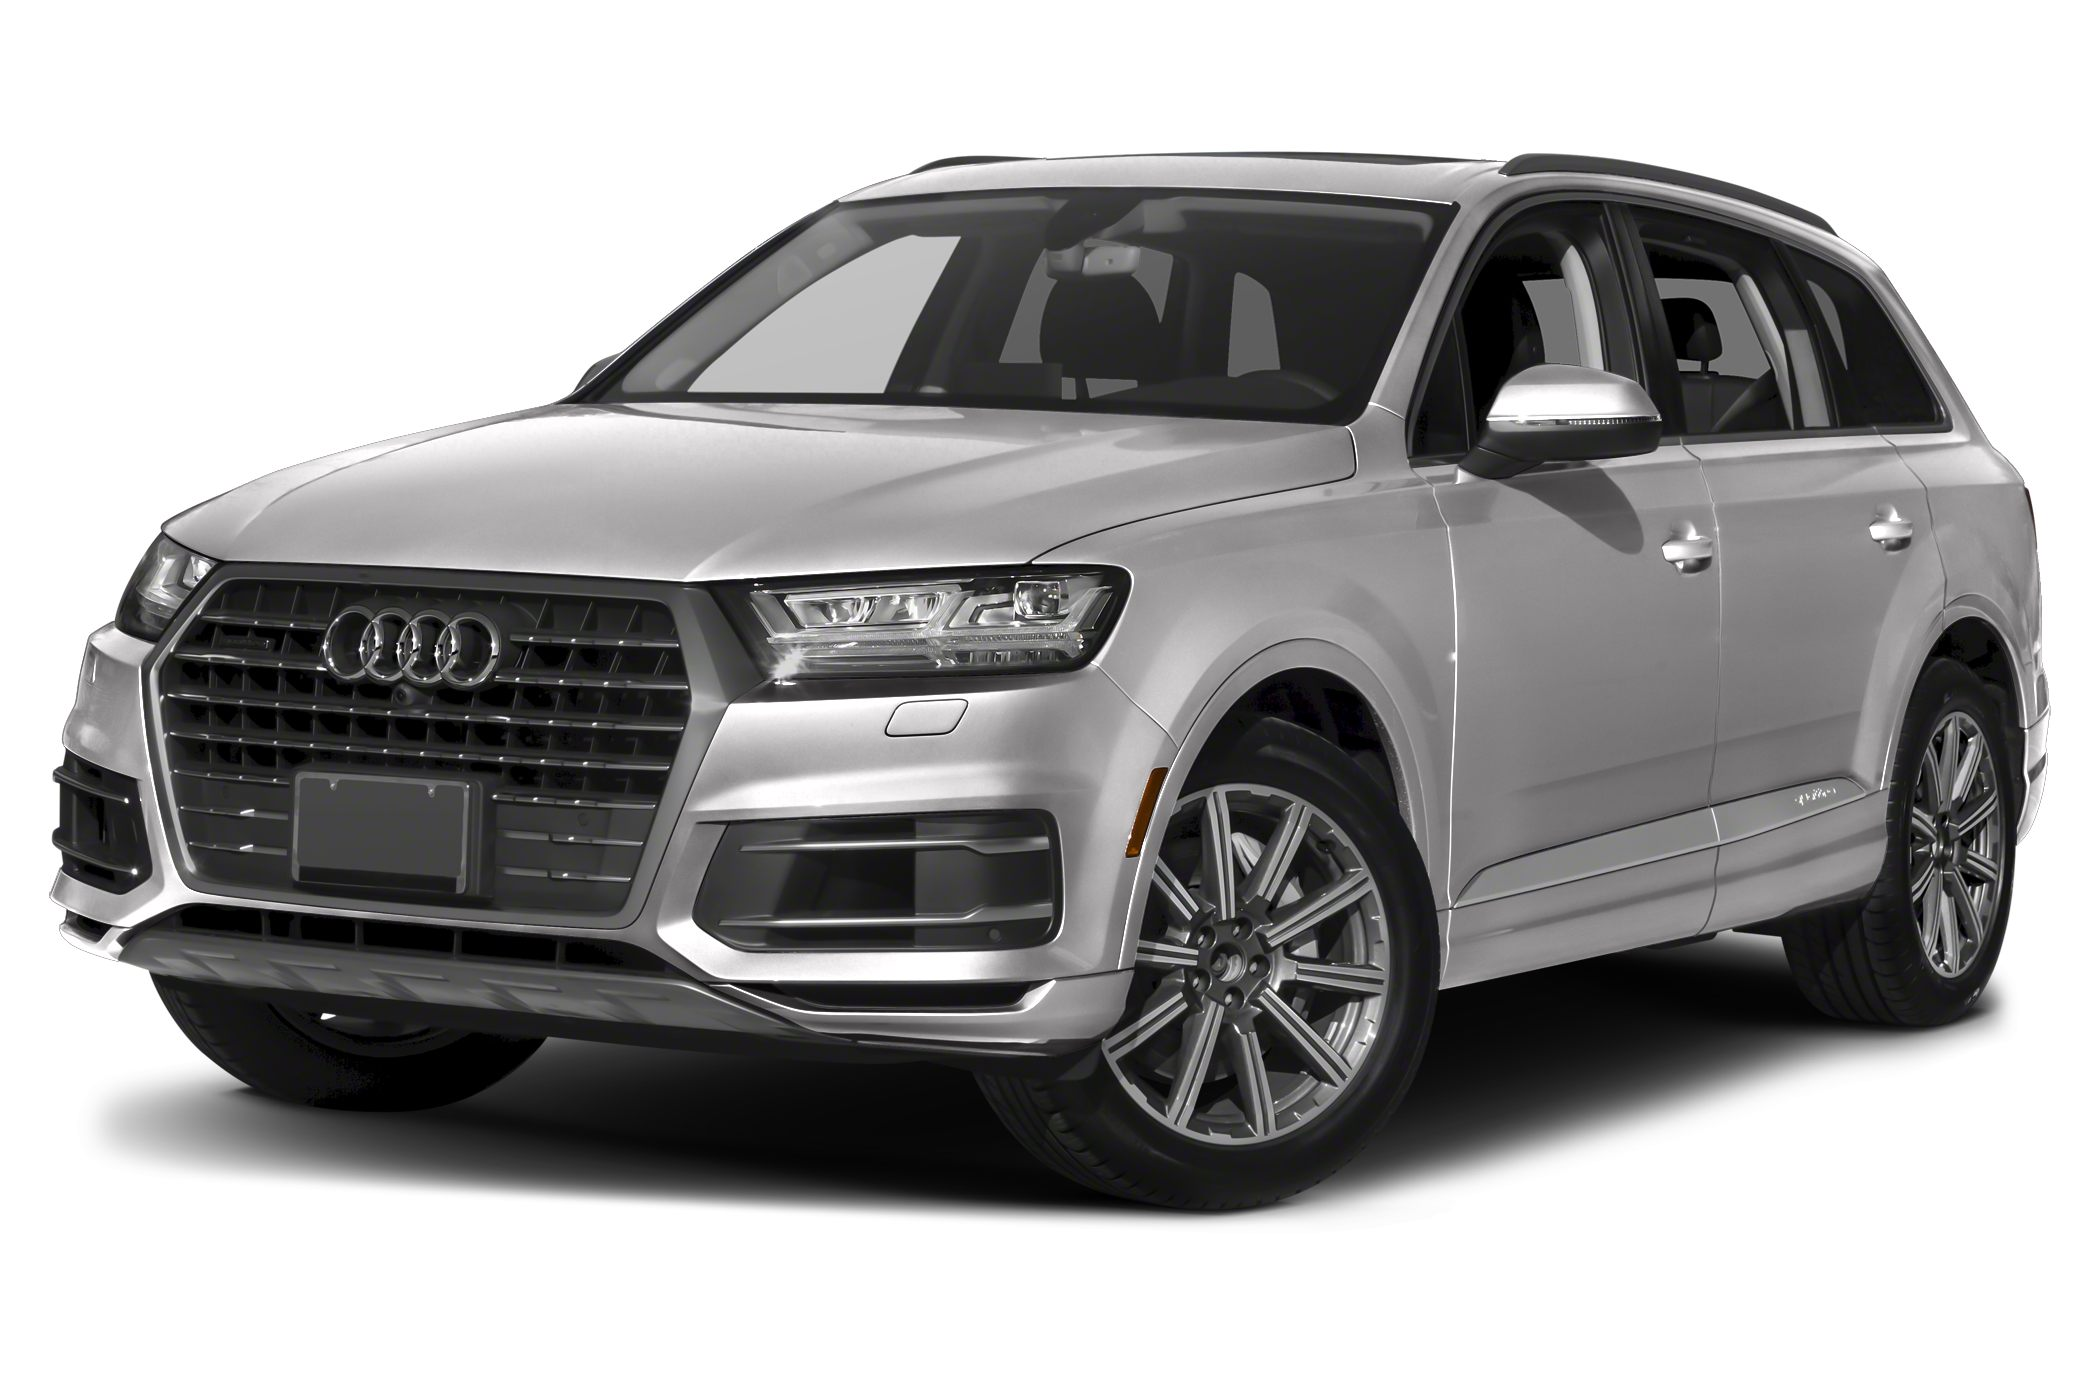 Audi Q5 Lease >> Audi Q7 News, Photos and Buying Information - Autoblog